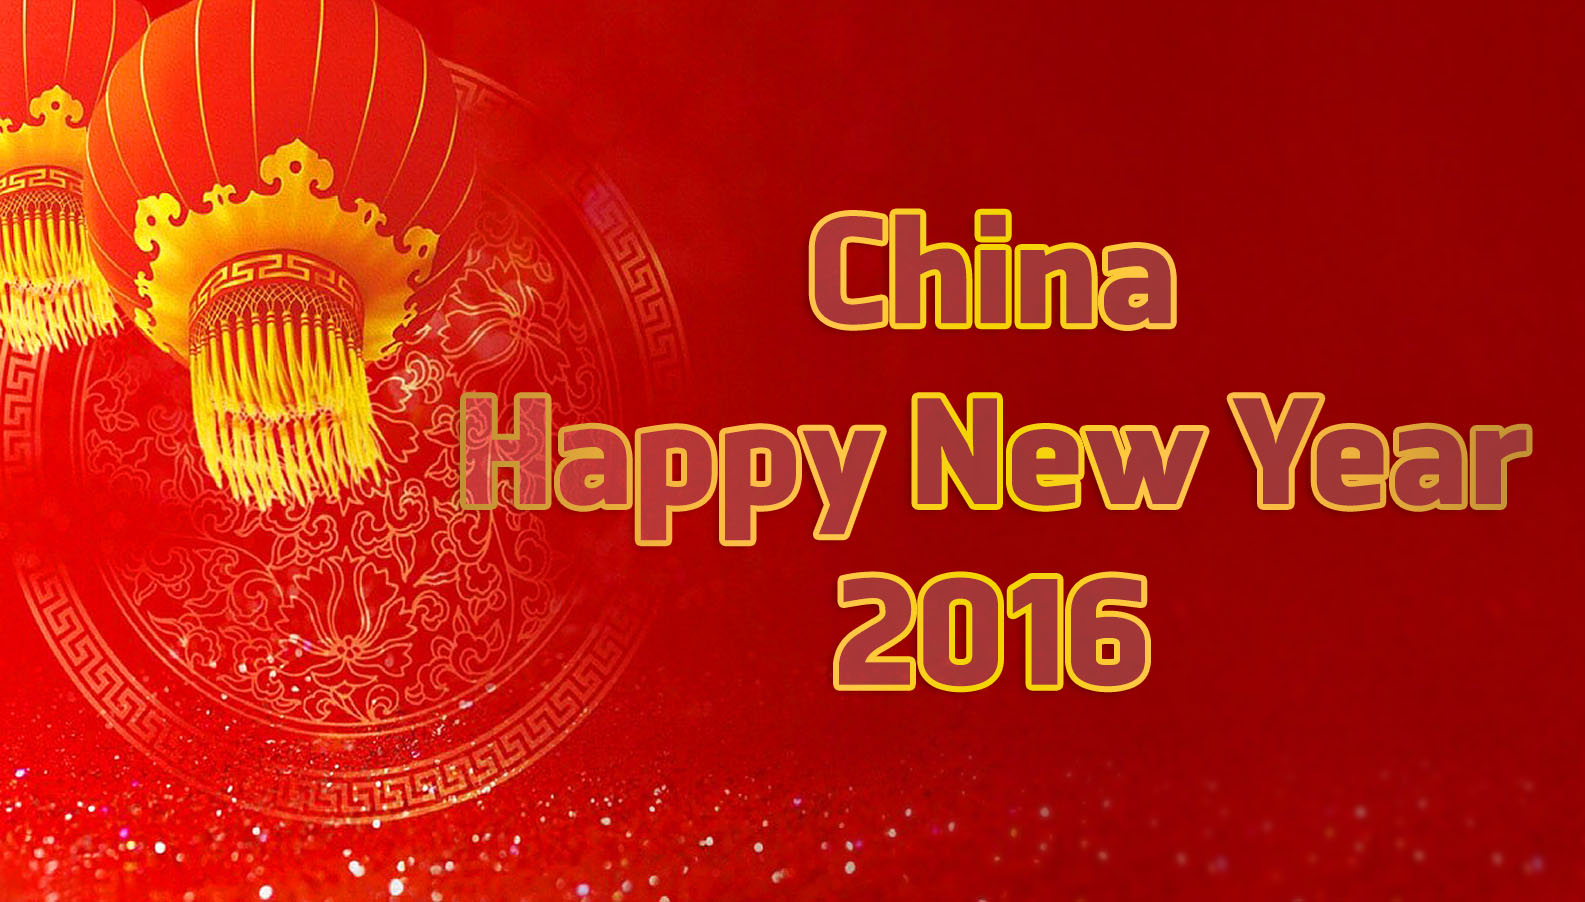 chinese new year 2016 images - When Is Chinese New Year 2016